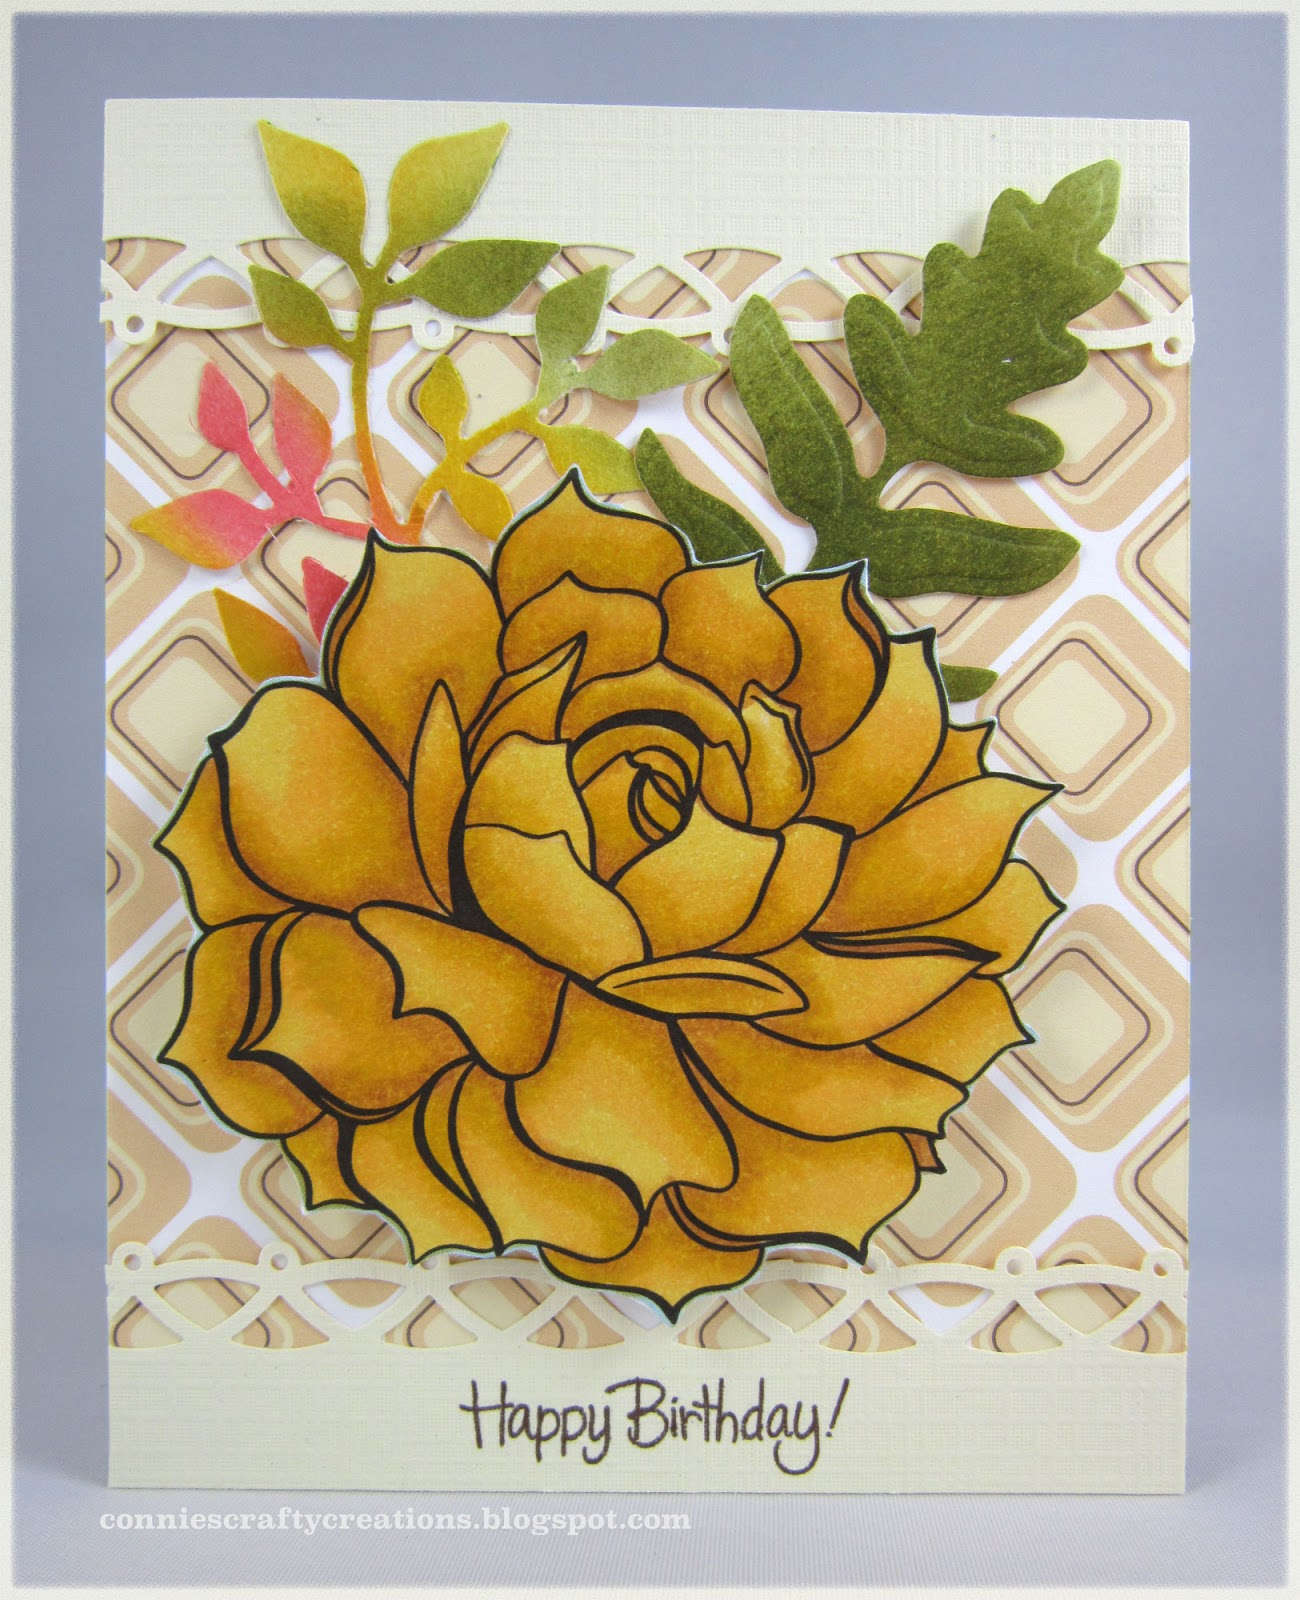 Connies crafty creations flower with fern flower daily calendar coloring image colored wmarkers papertrey ink hodge podge papers martha stewart border punch spellbinders foliage die fern izmirmasajfo